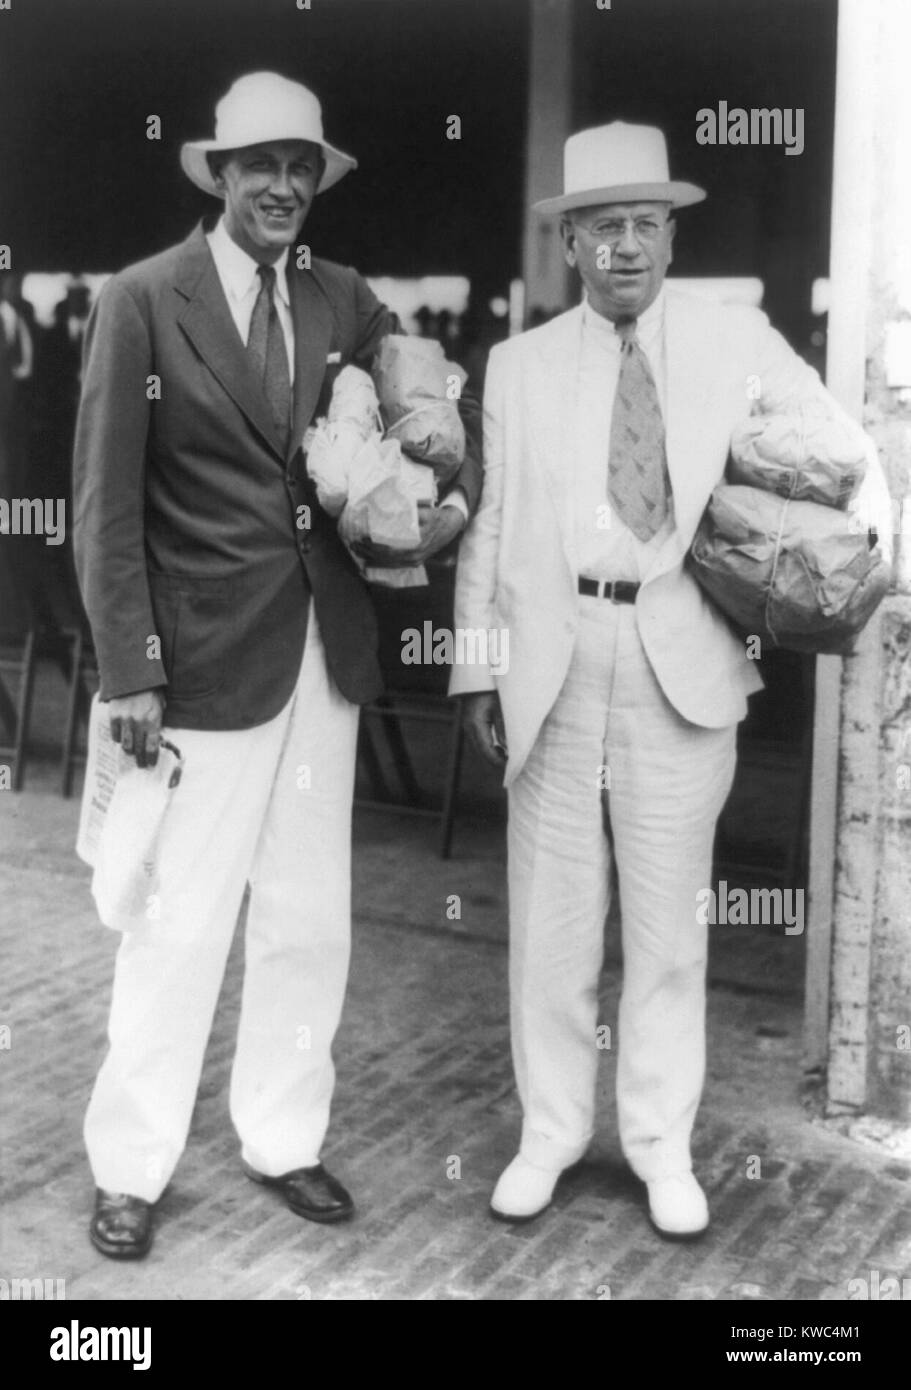 FDR's feuding but indispensable New Dealers, Harold L. Ickes and Harry Hopkins. Oct. 19, 1935 during a trip - Stock Image